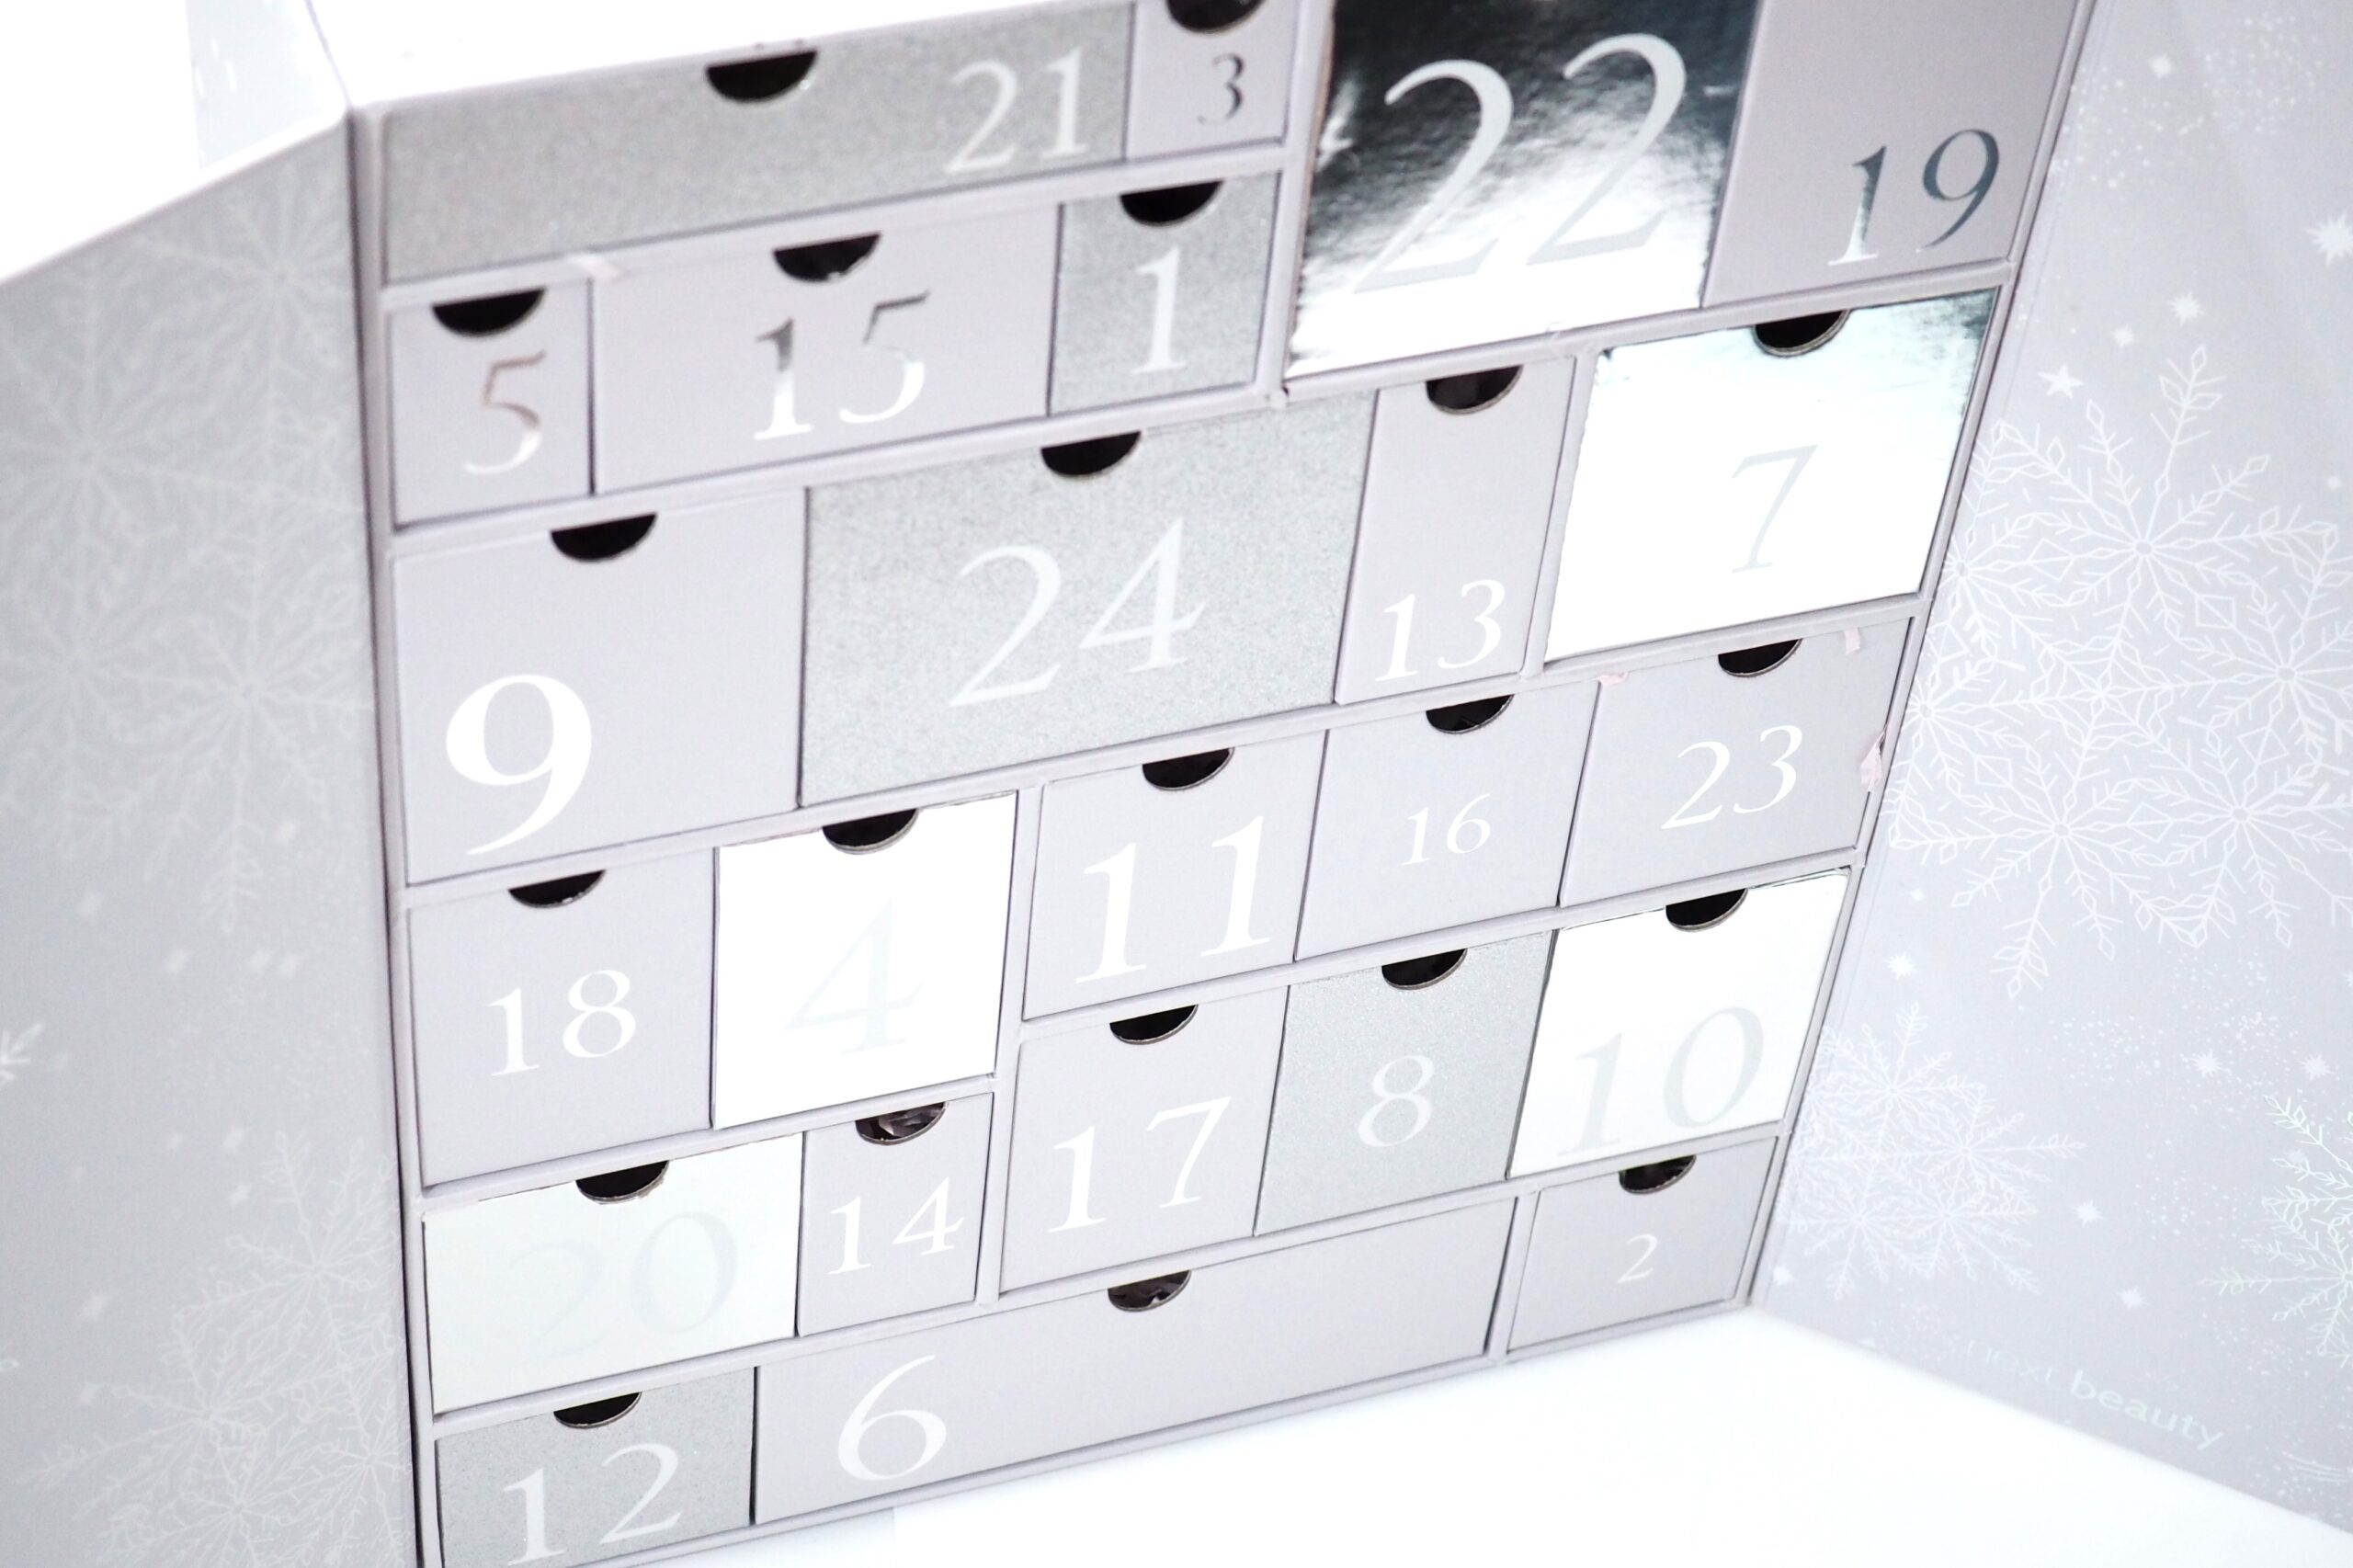 Next Beauty Hers Advent Calendar 2021 Unboxing and Review